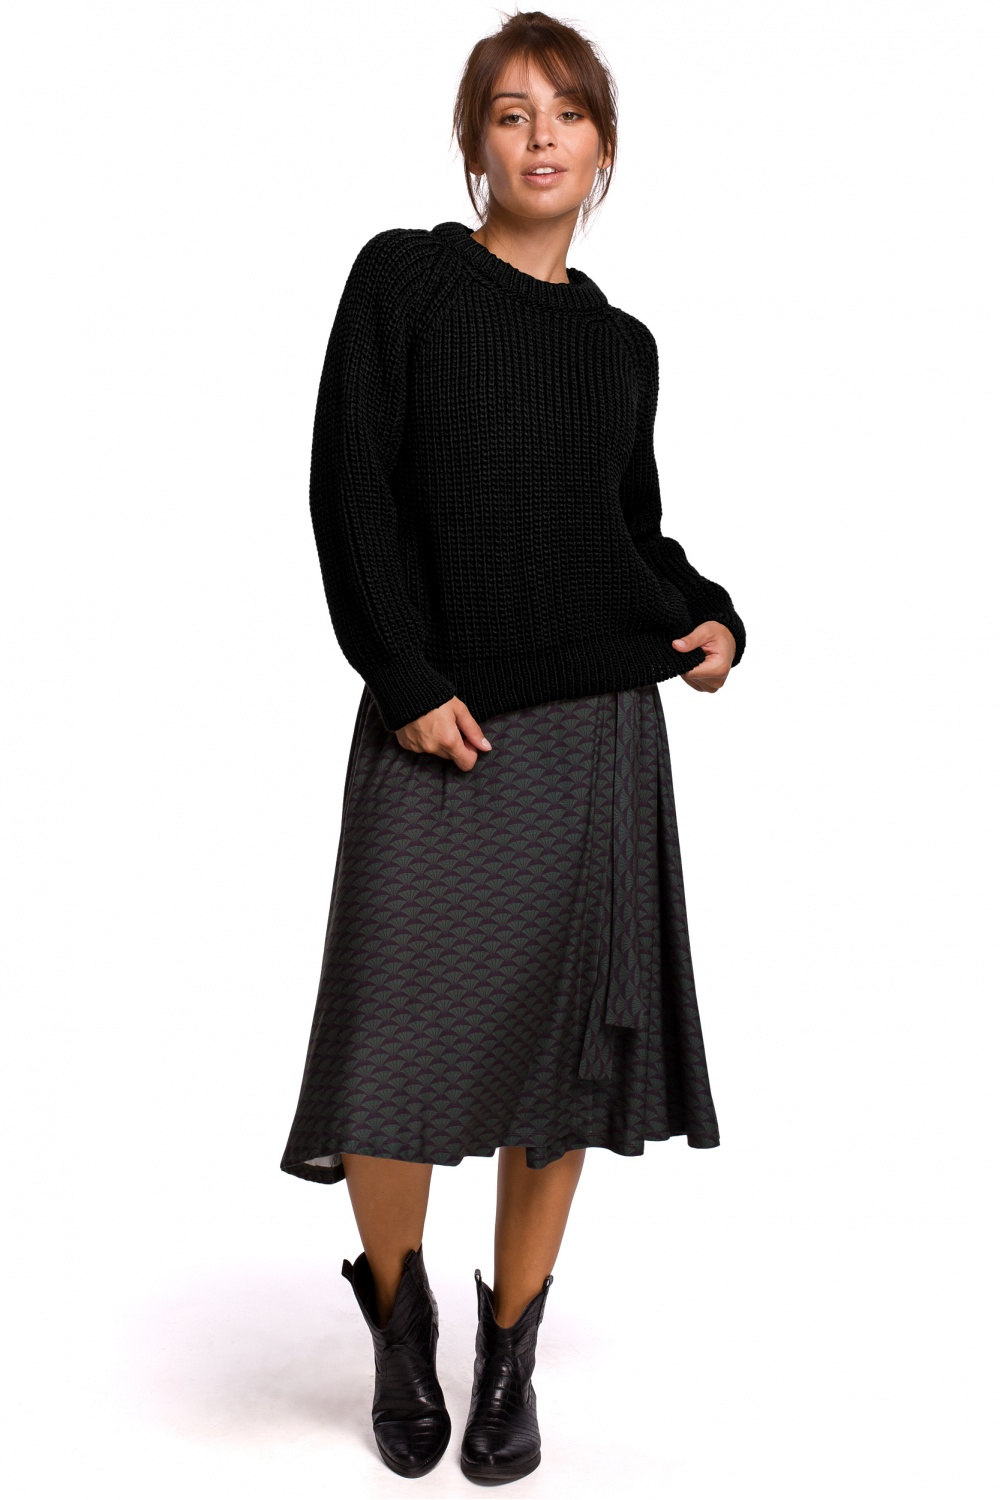 Pulover model 148283 BE Knit